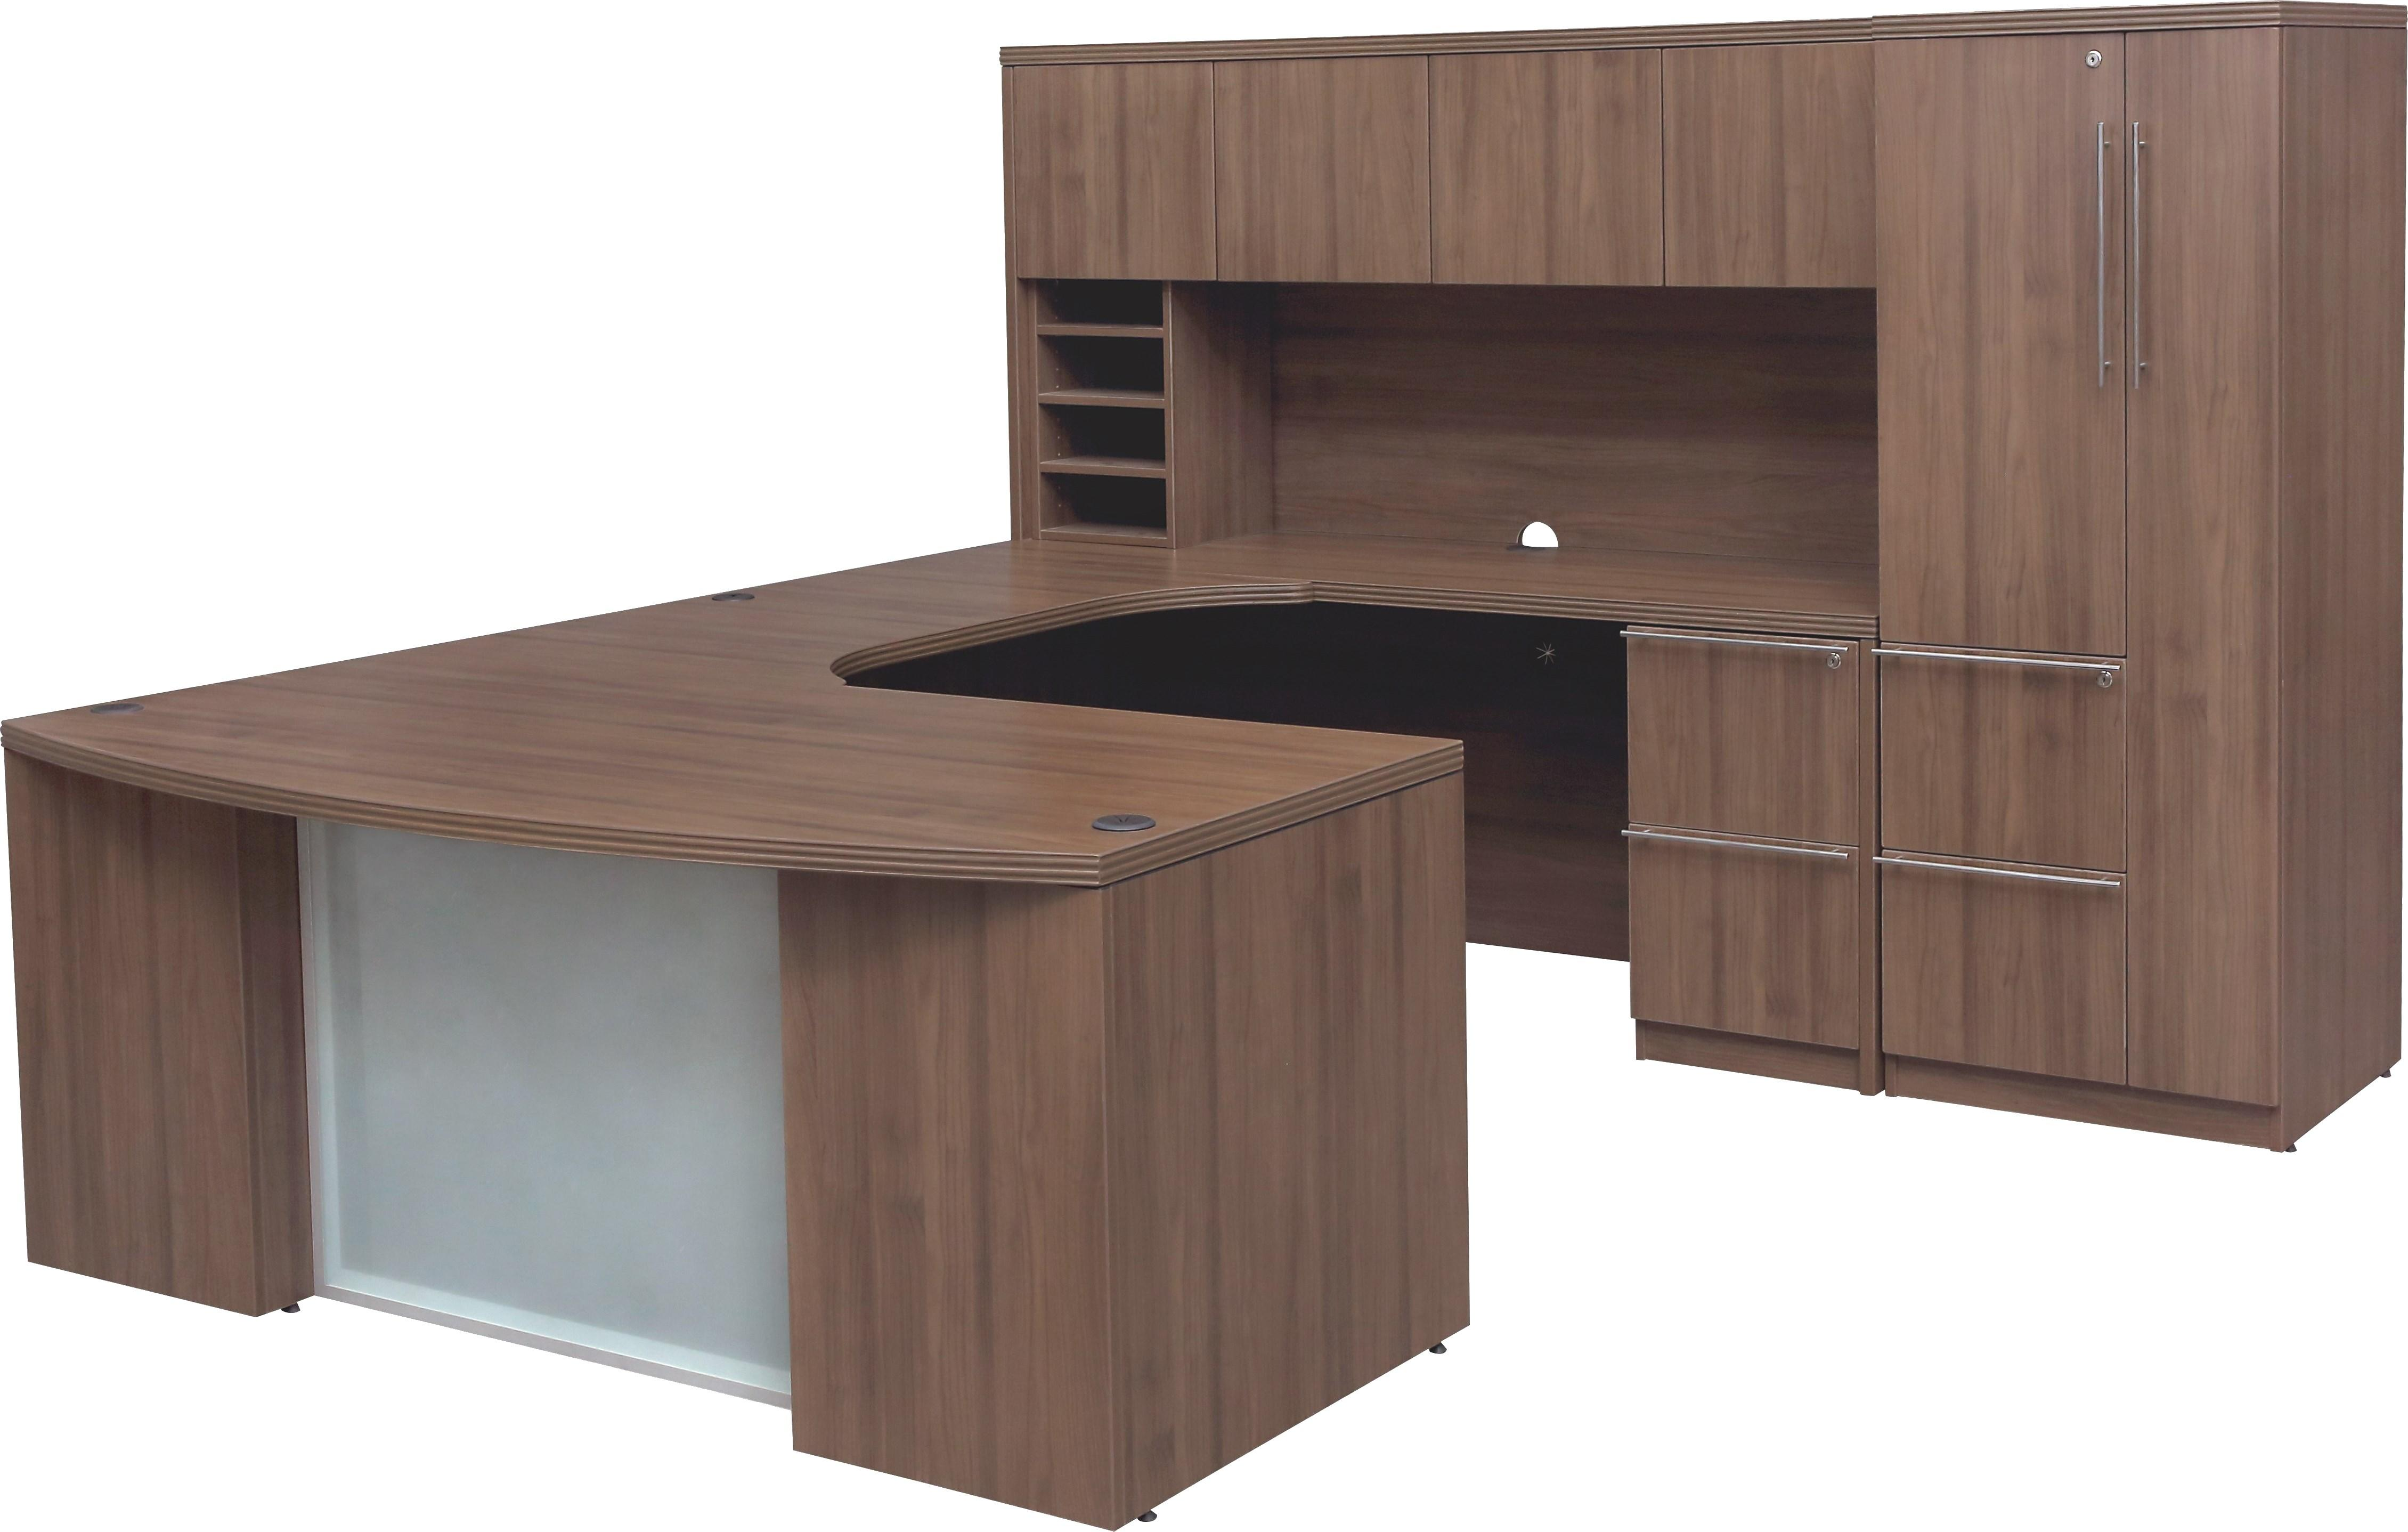 desk melbournecontemporary co uk centre desks office football furniture s used tickets reception